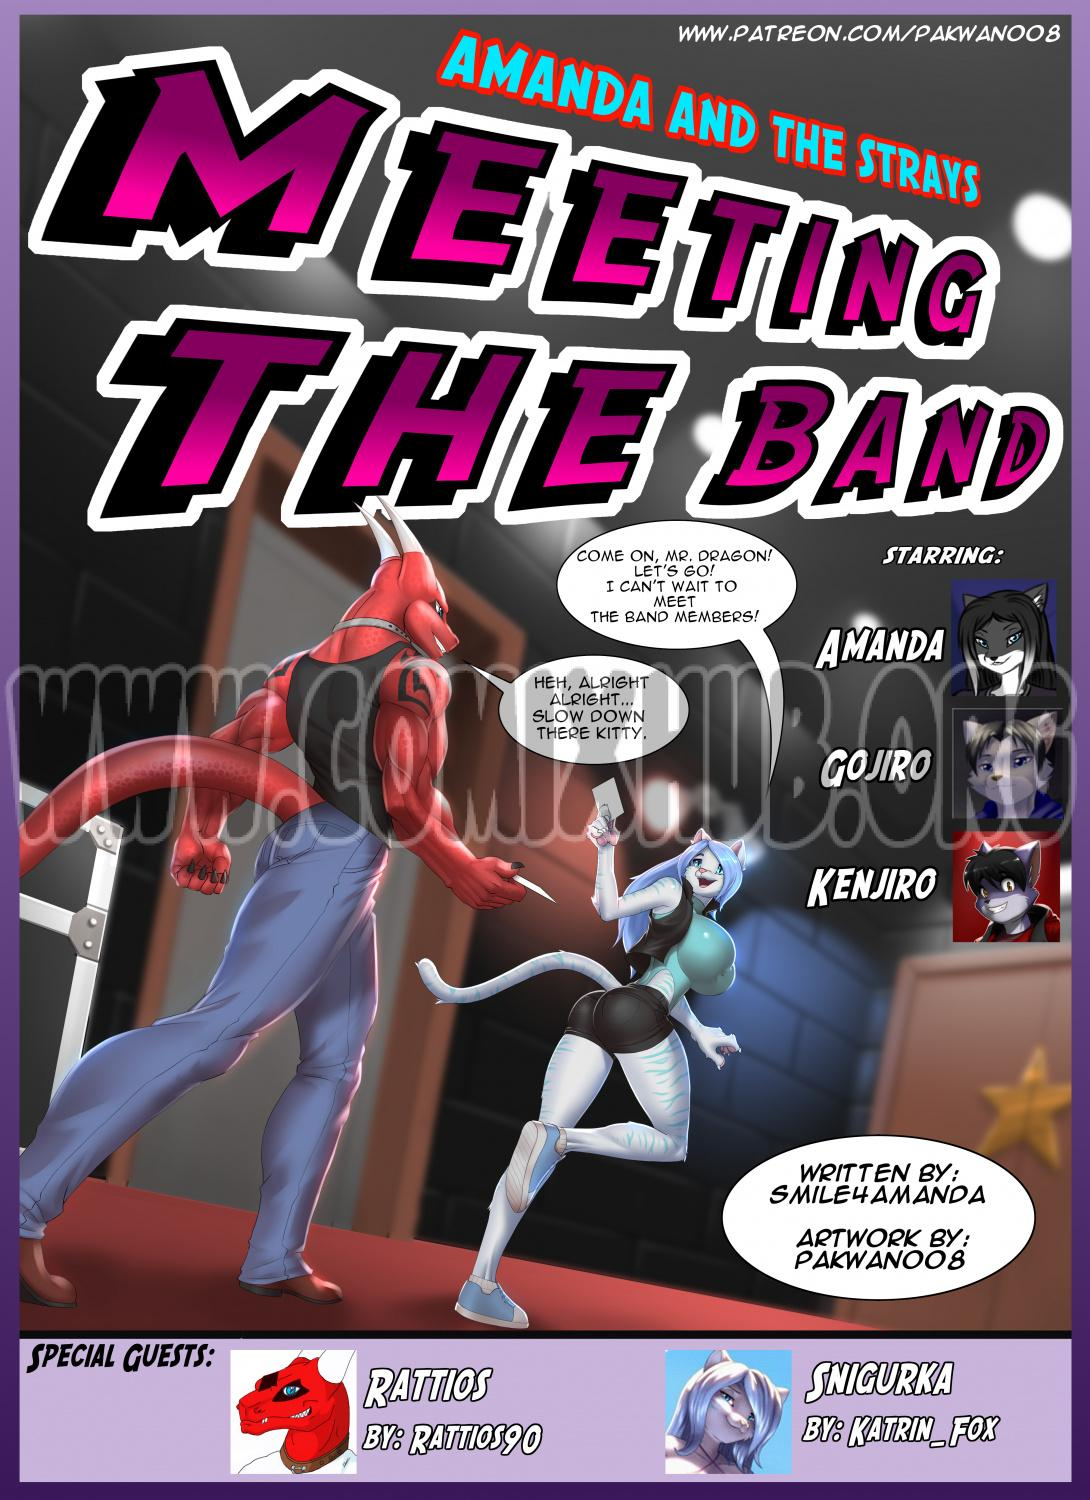 Meeting the Band Oral sex, Anal Sex, Big Tits, Blowjob, Cum Shots, Cum Swallow, Double Penetration, Furry, Group Sex, Straight, Threesome, X-Ray